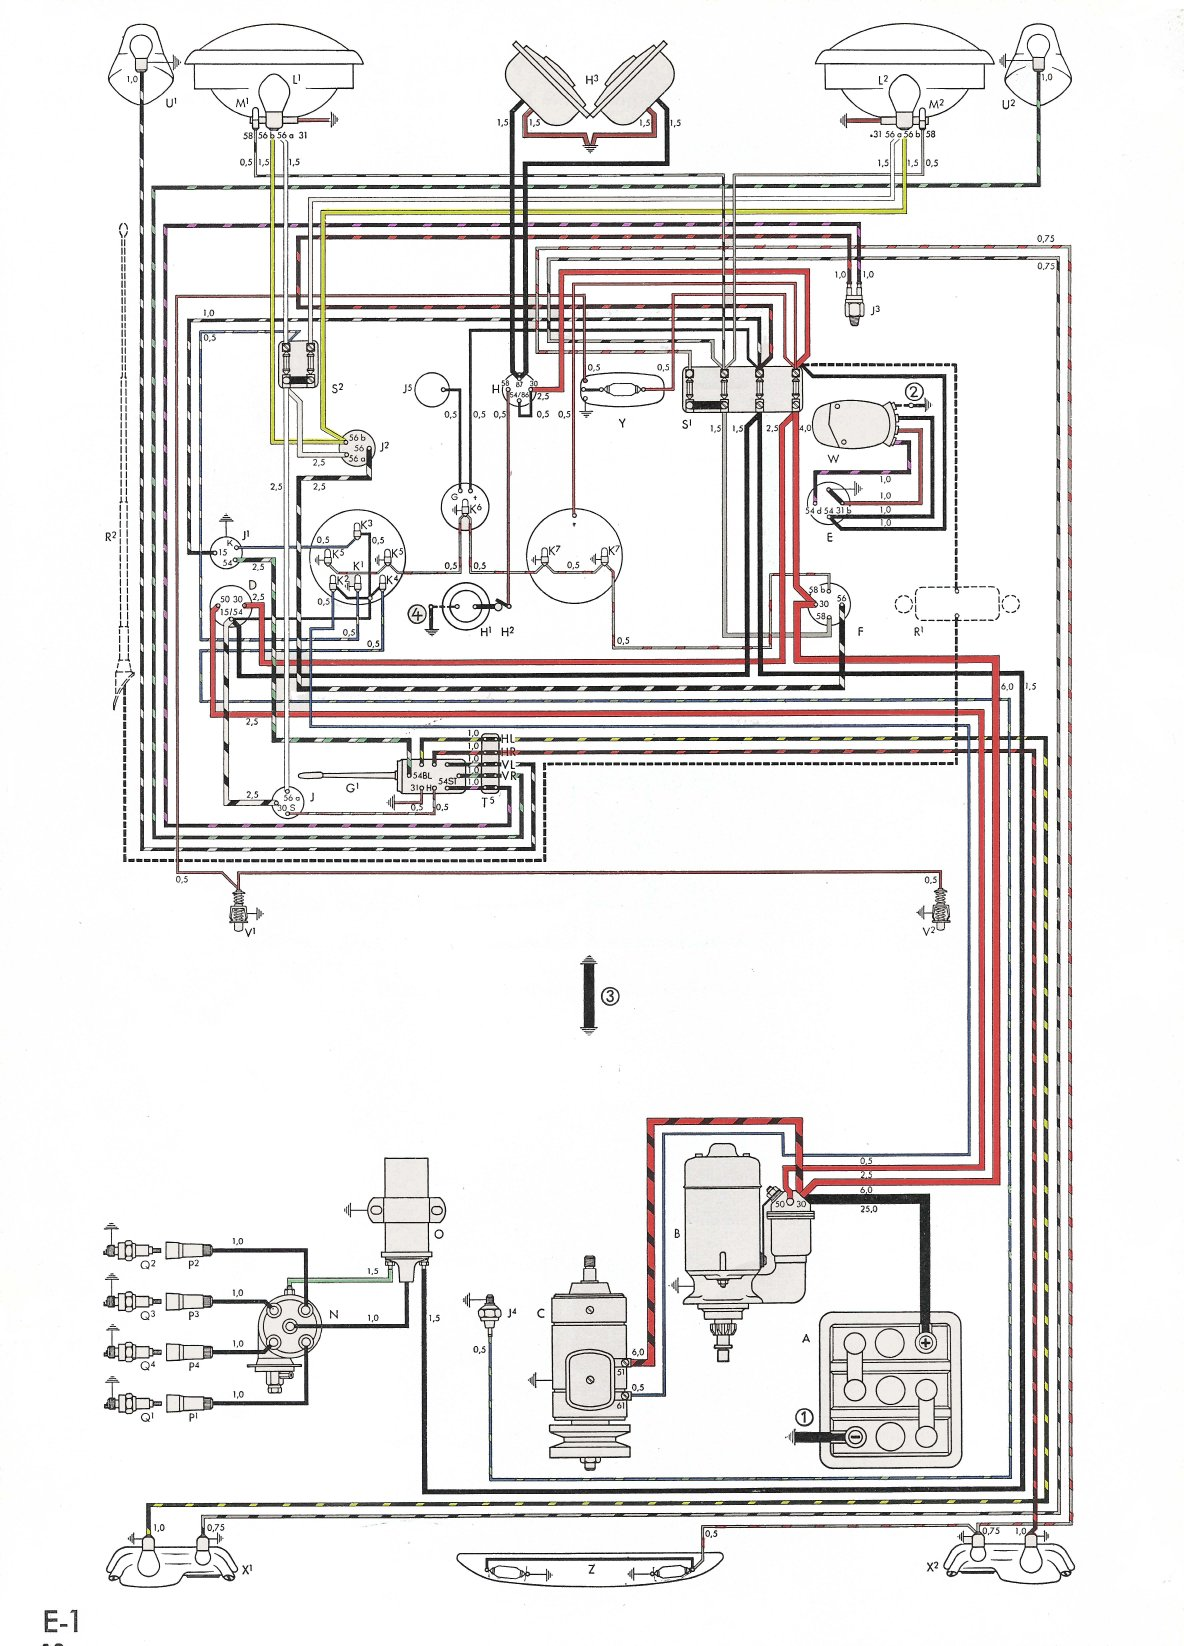 58ghia thesamba com karmann ghia wiring diagrams porsche 356 wiring diagram at crackthecode.co